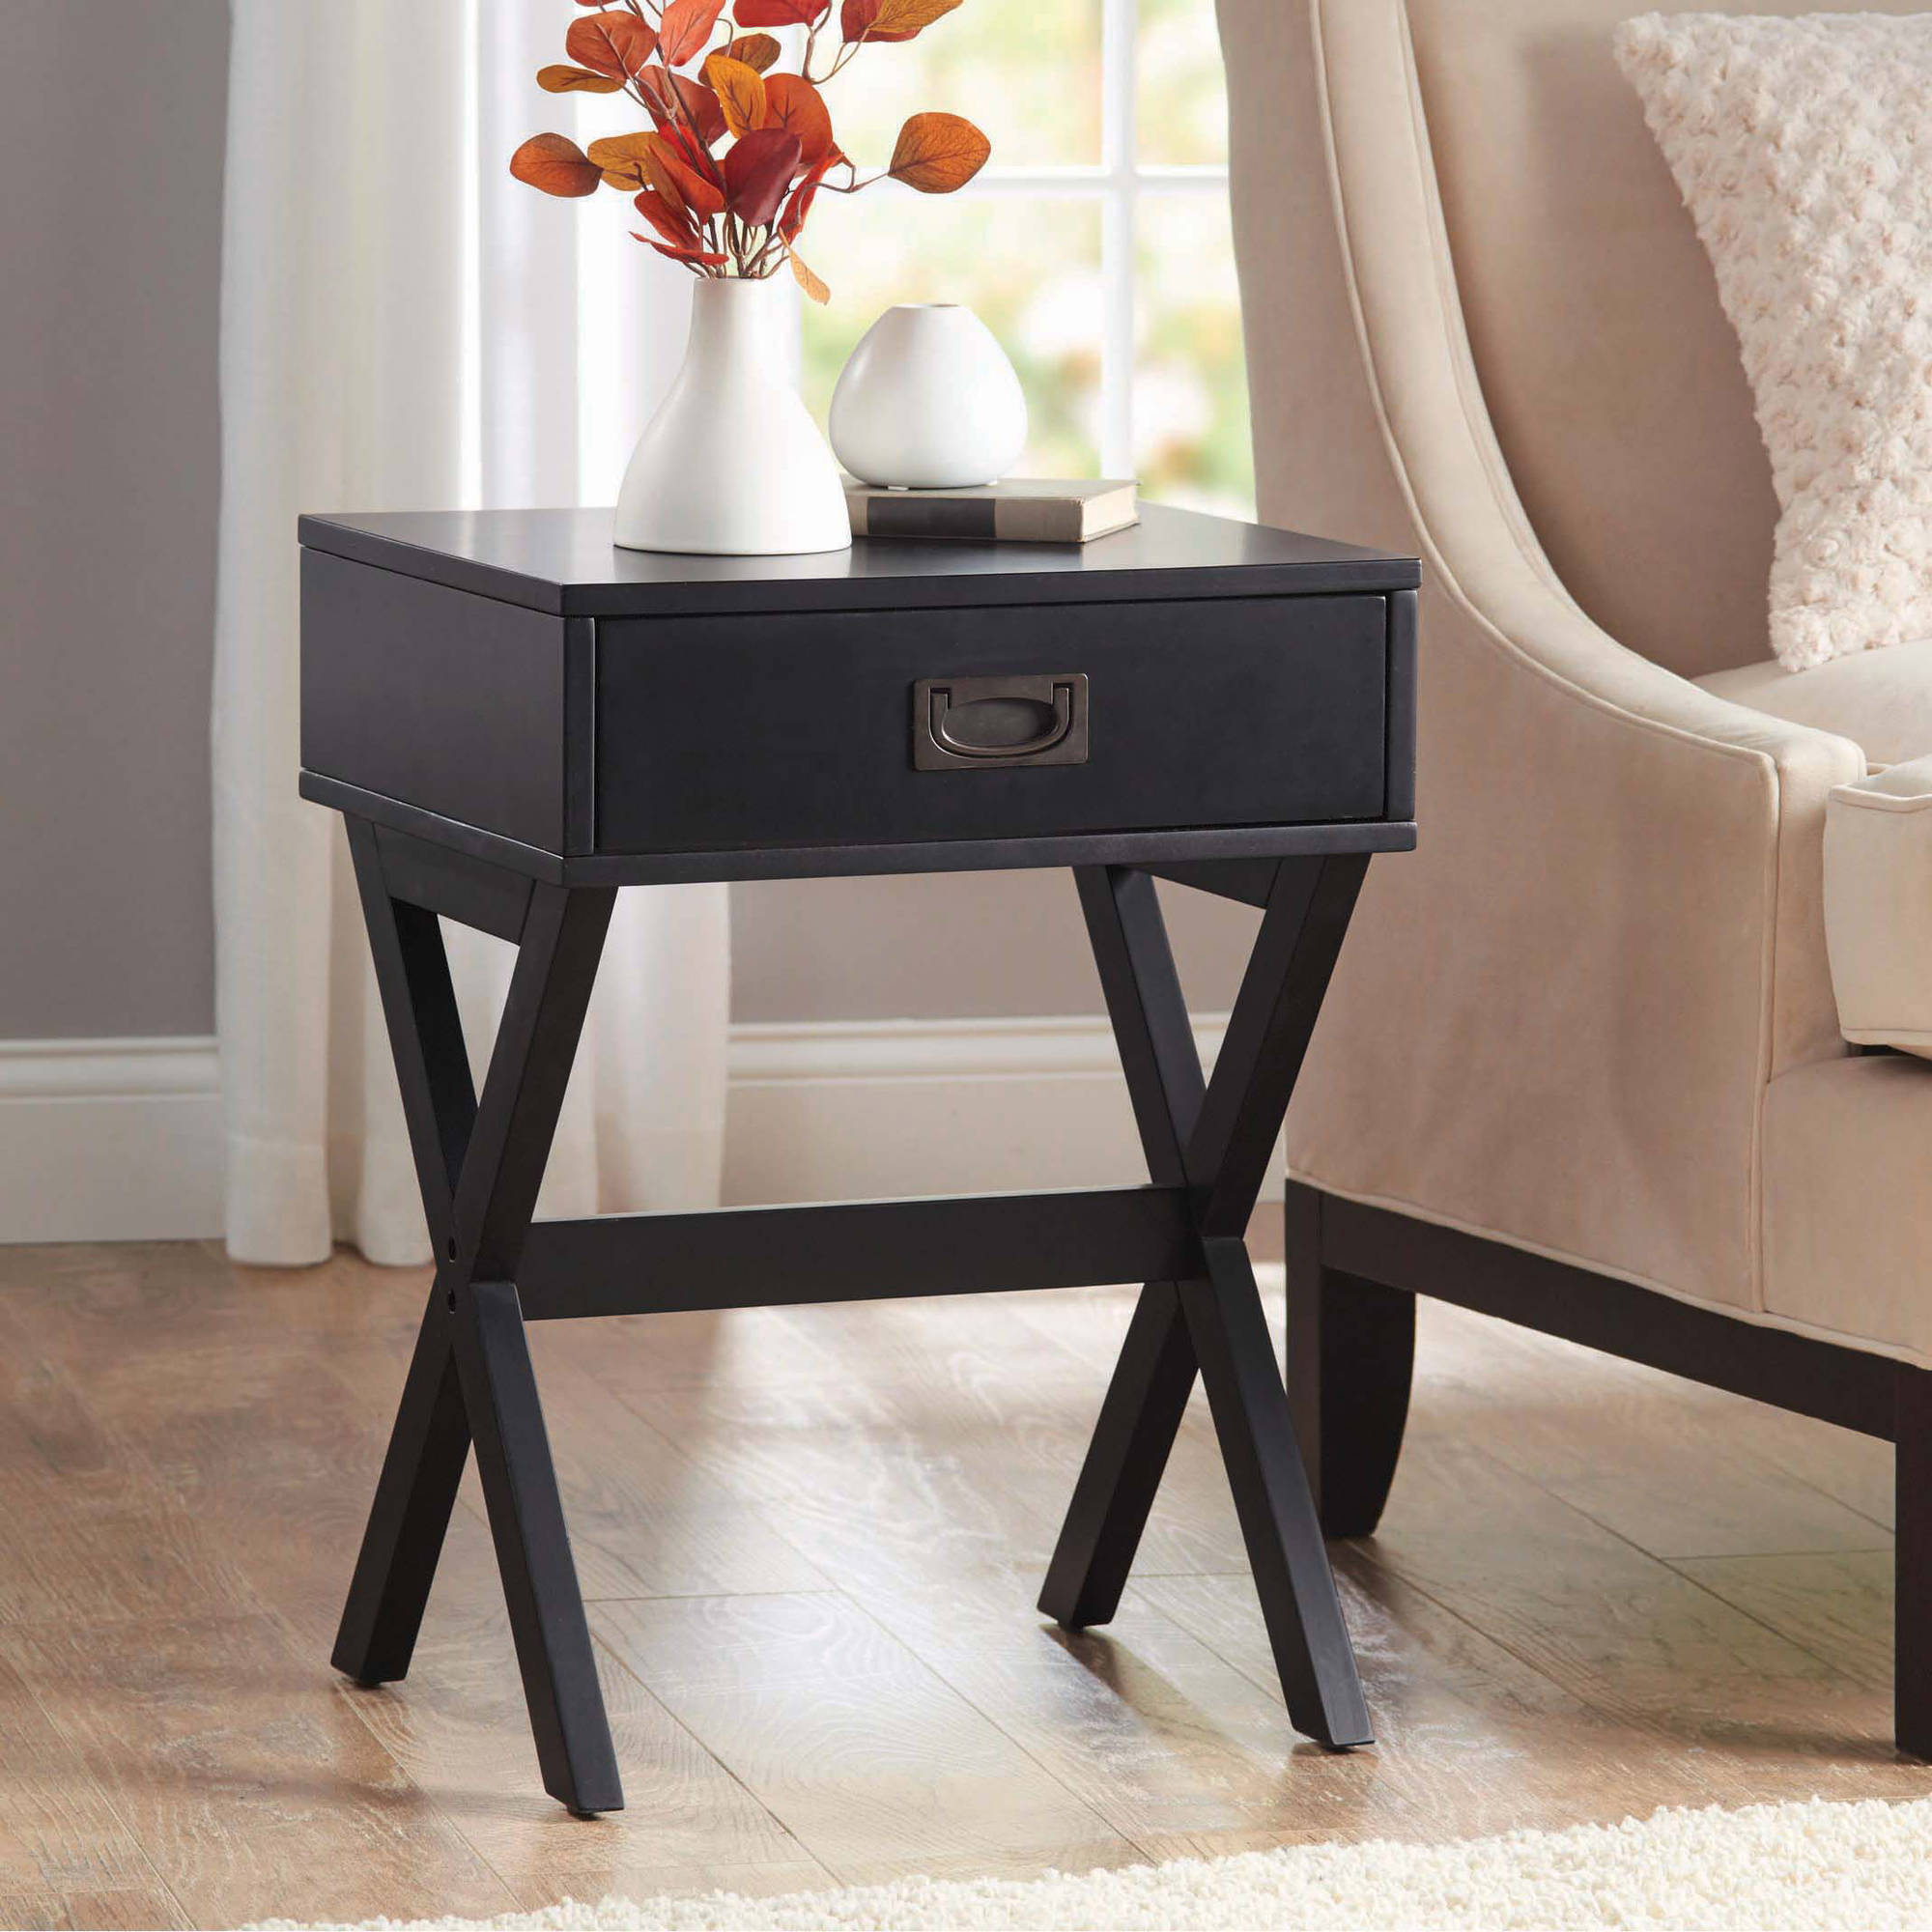 Better Homes & Gardens X-Leg Accent Table with Drawer, Multiple Colors